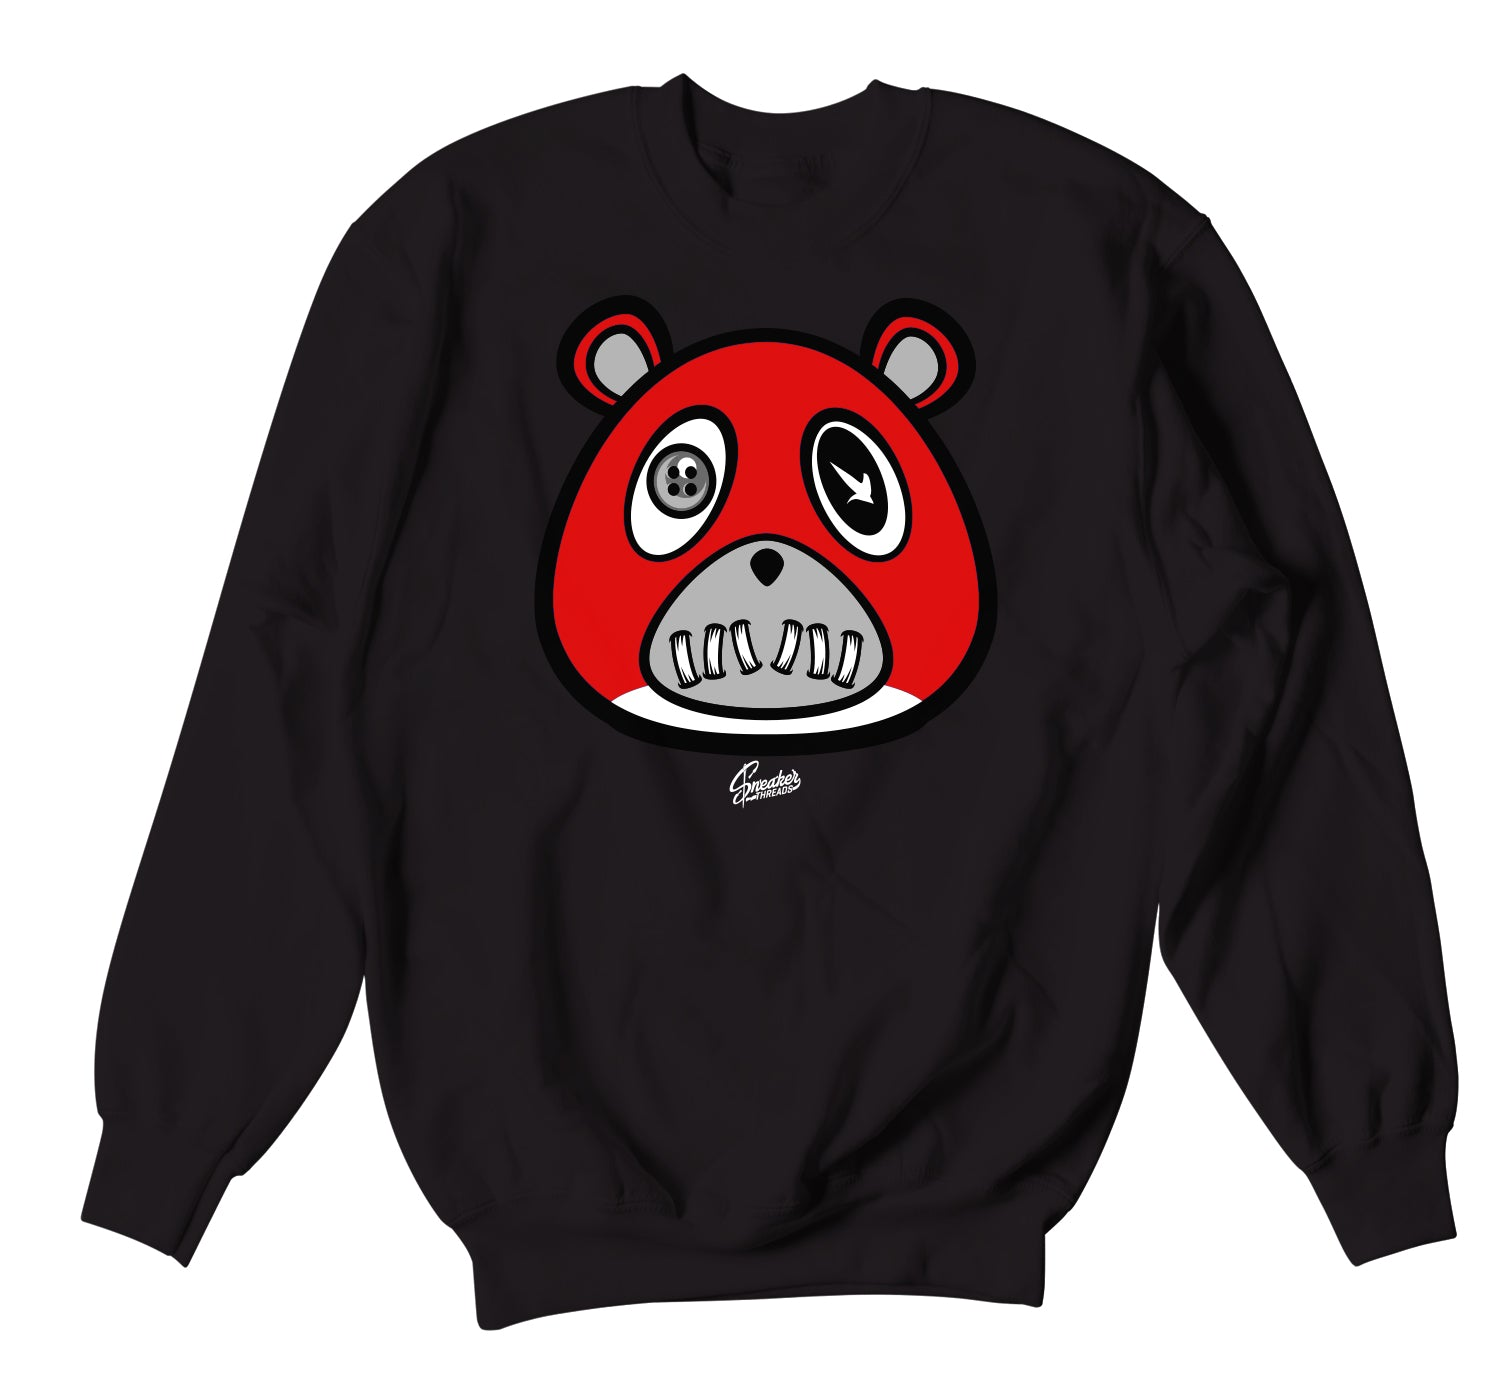 Yeezy 350 Bred ST Bear Sweater